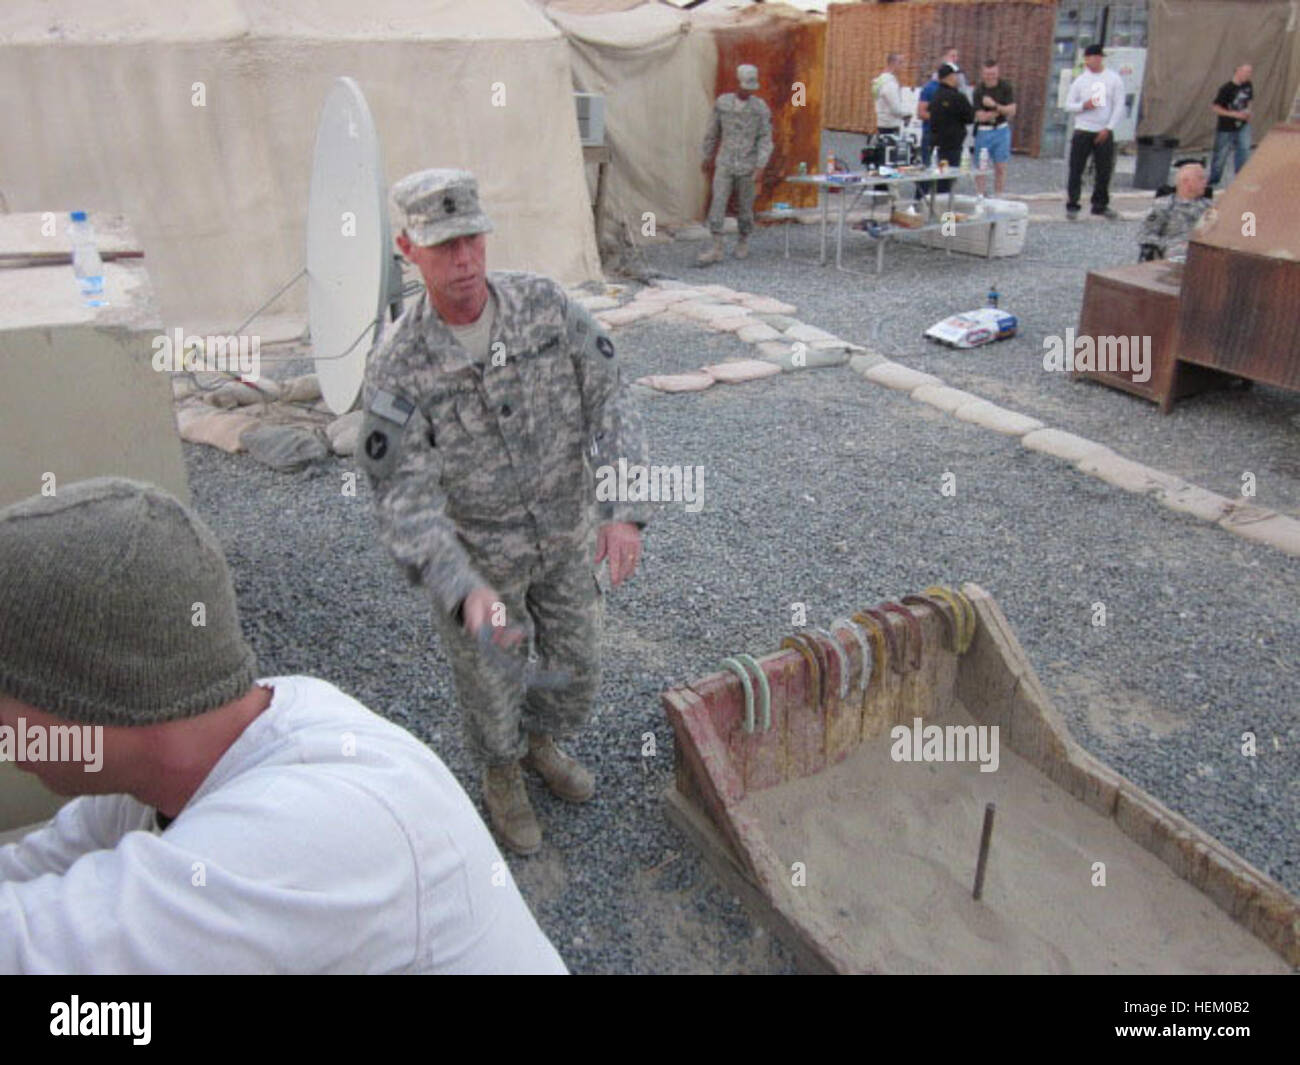 1SG Danny Orand from of C Battery, 1-125 FA, throws horseshoes while waiting dinner at Camp Arifjan.  C BTRY celebrated - Stock Image